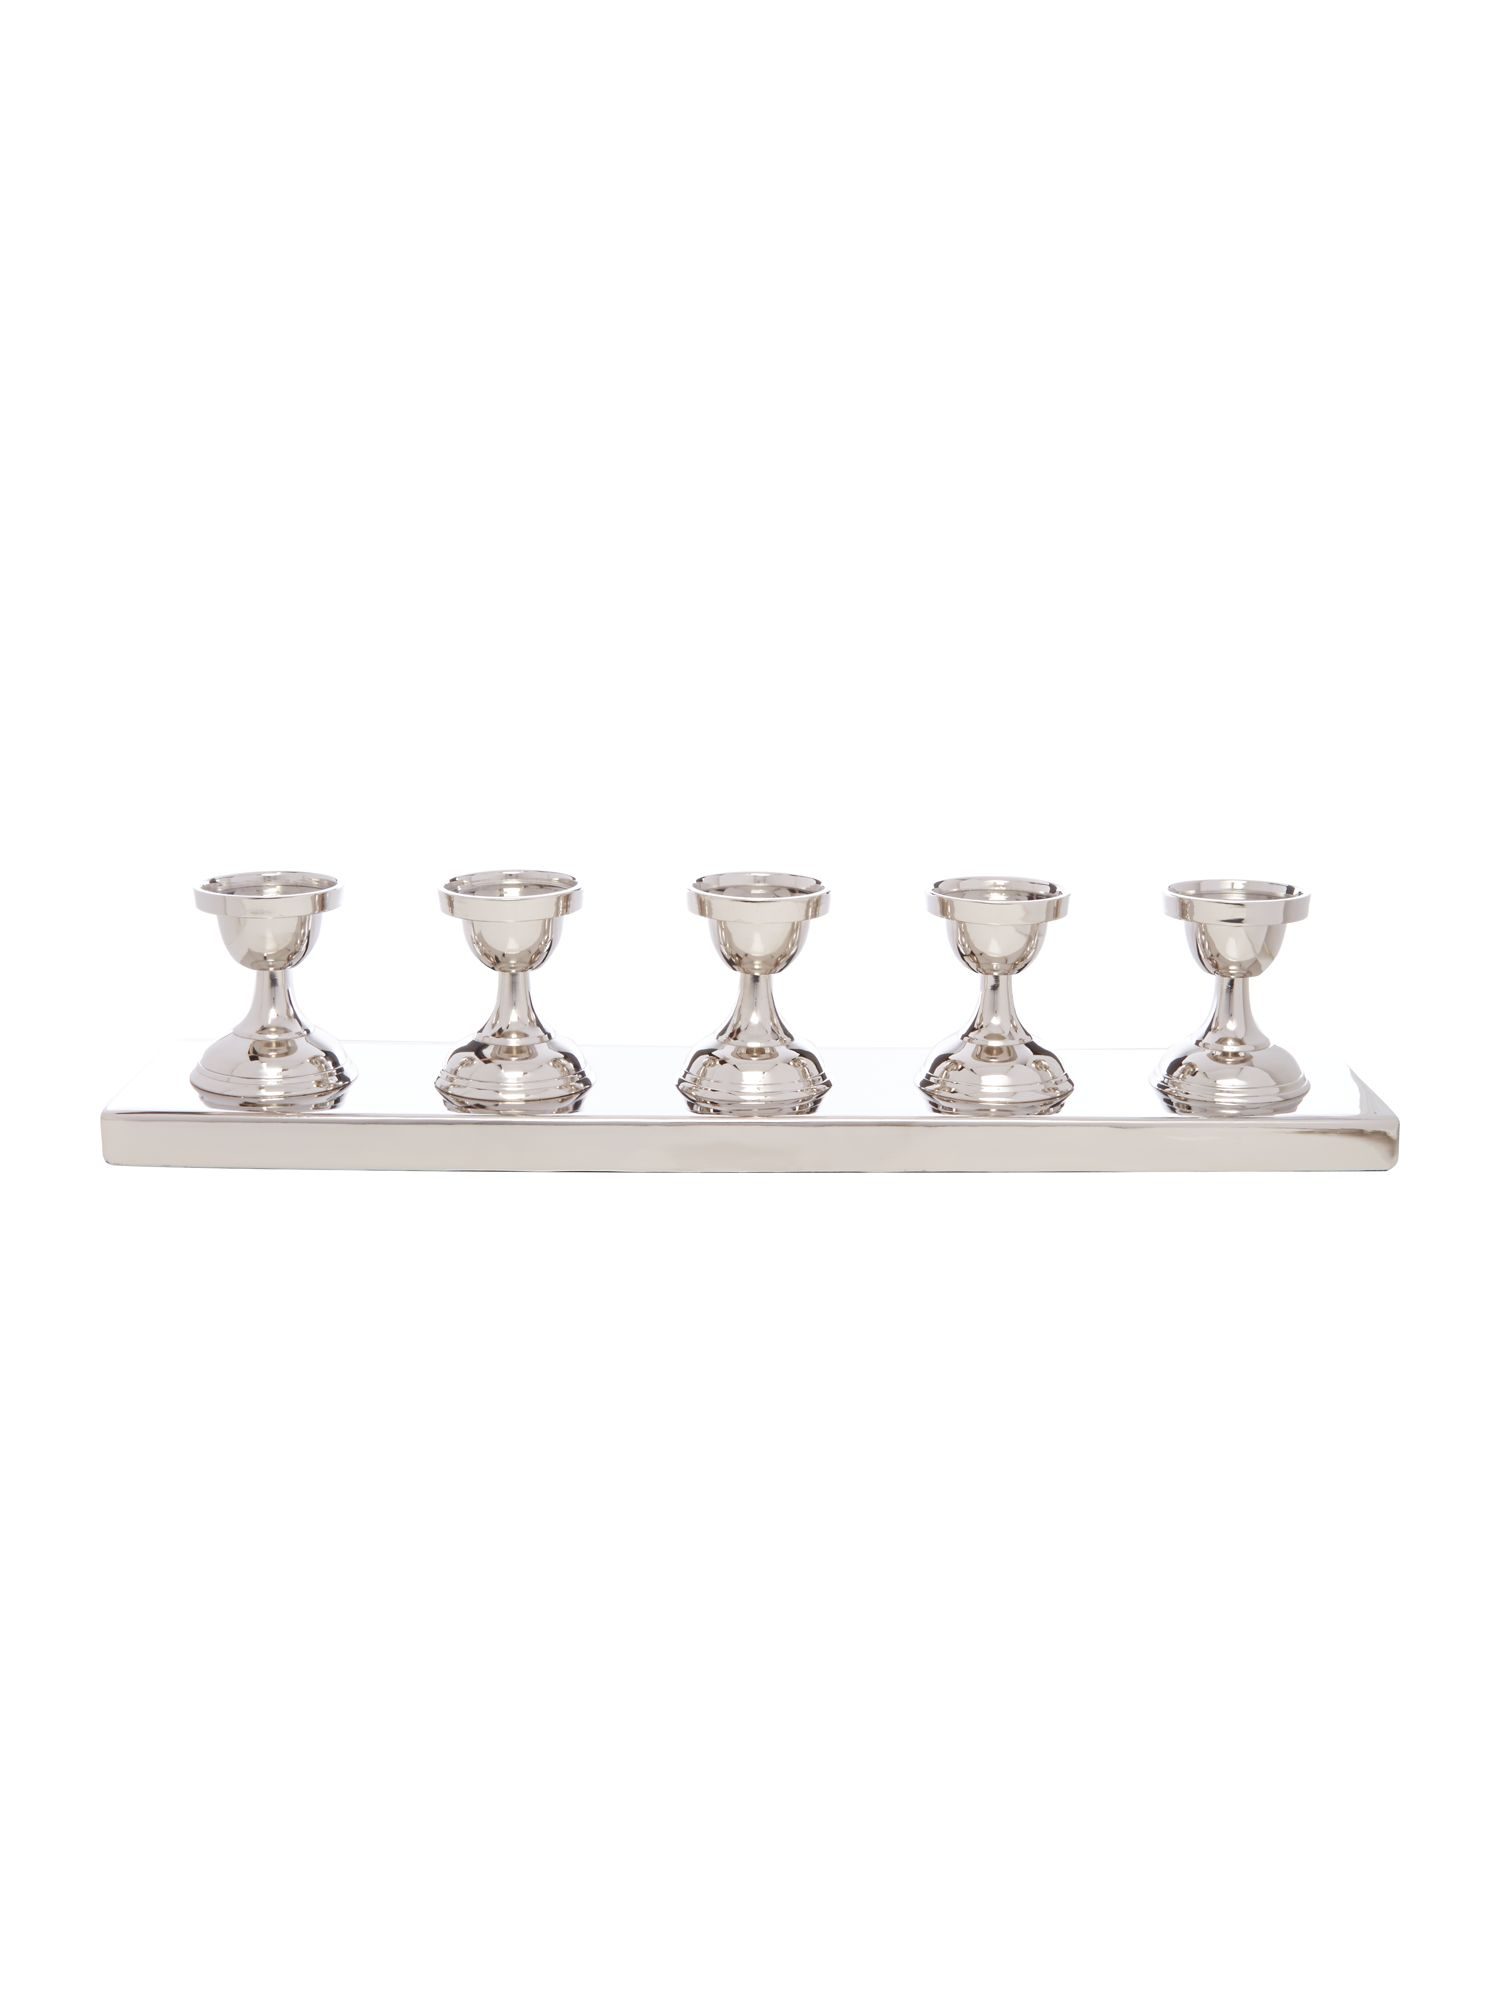 5 candle holder